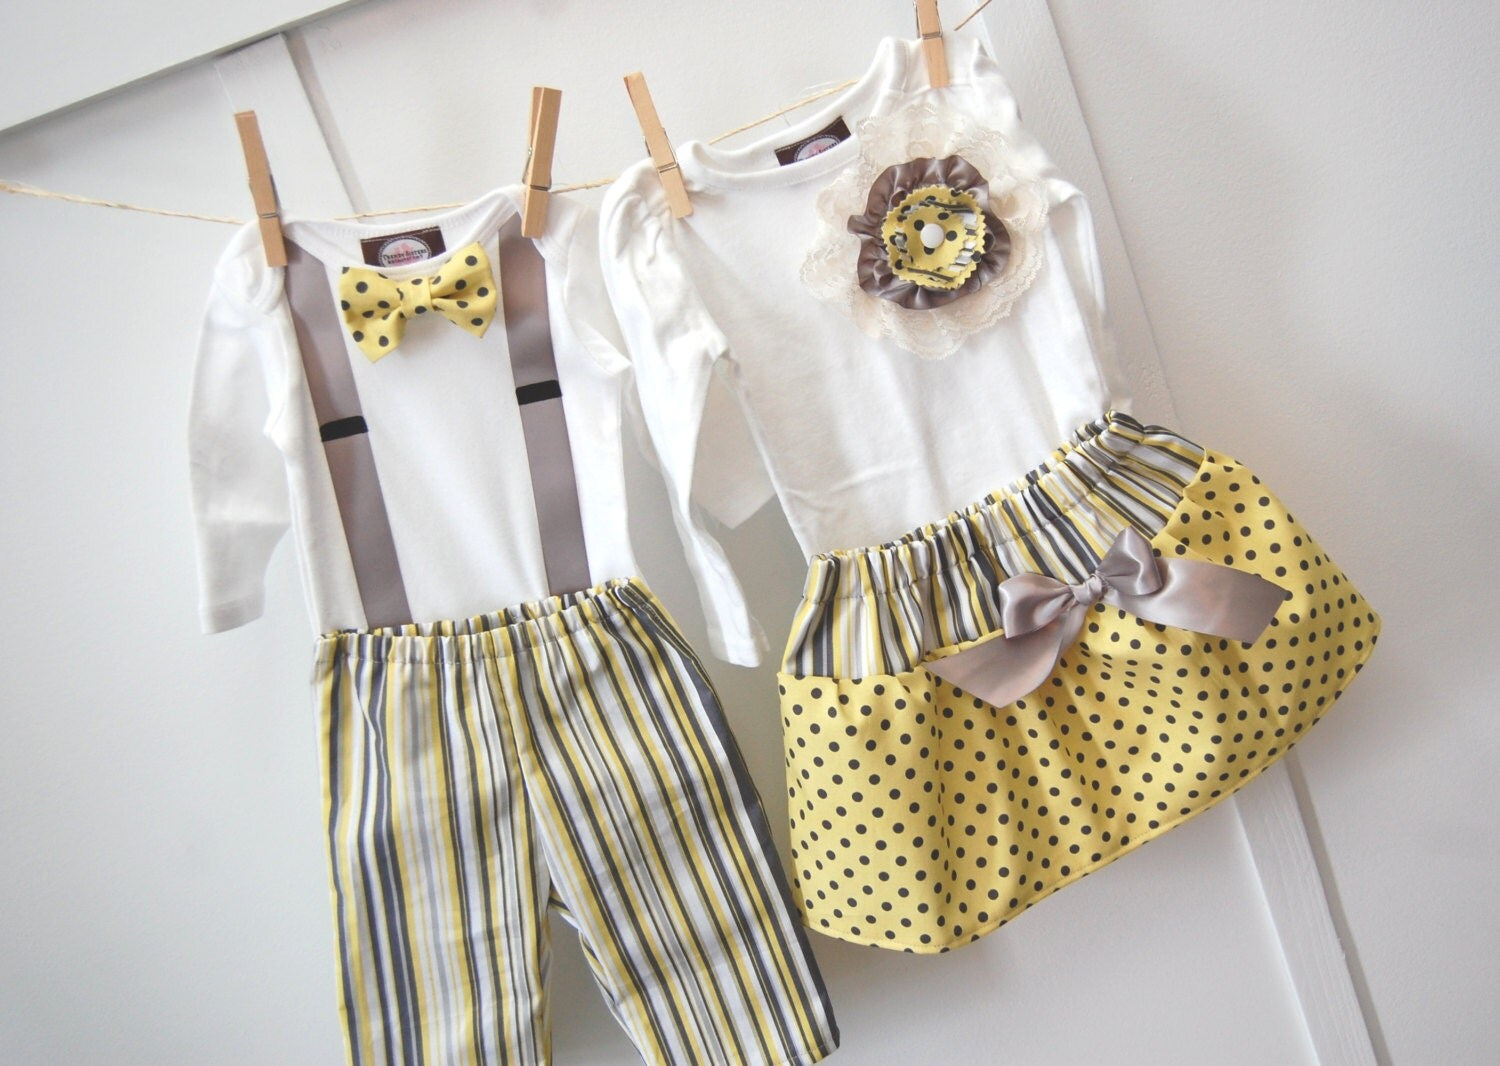 Easter sibling set Pictures Boys Tie Girls Dress Yellow Citron Gray Grey Sisters Brothers  Bow Tie Skirt Pant 2pc SET - trendysisters